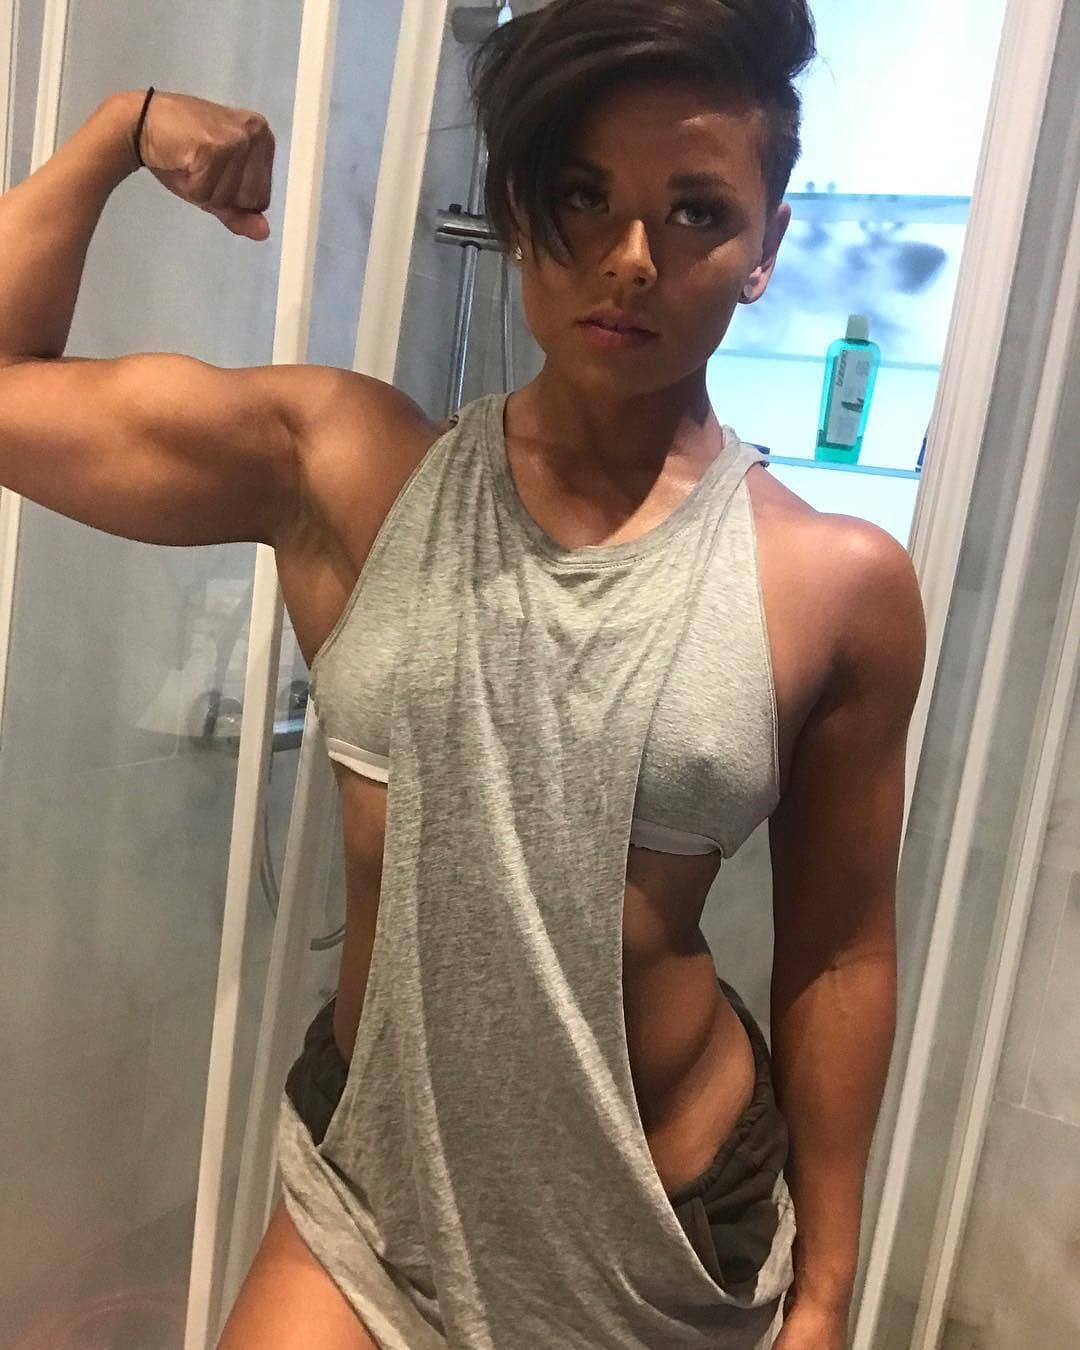 b42efe4e9e2dc Ms Sophie Arvebrink Model  sophie.arvebrink Profession Fitness model   Personal Trainer Nationality Sweden .  femalemuscleworld…